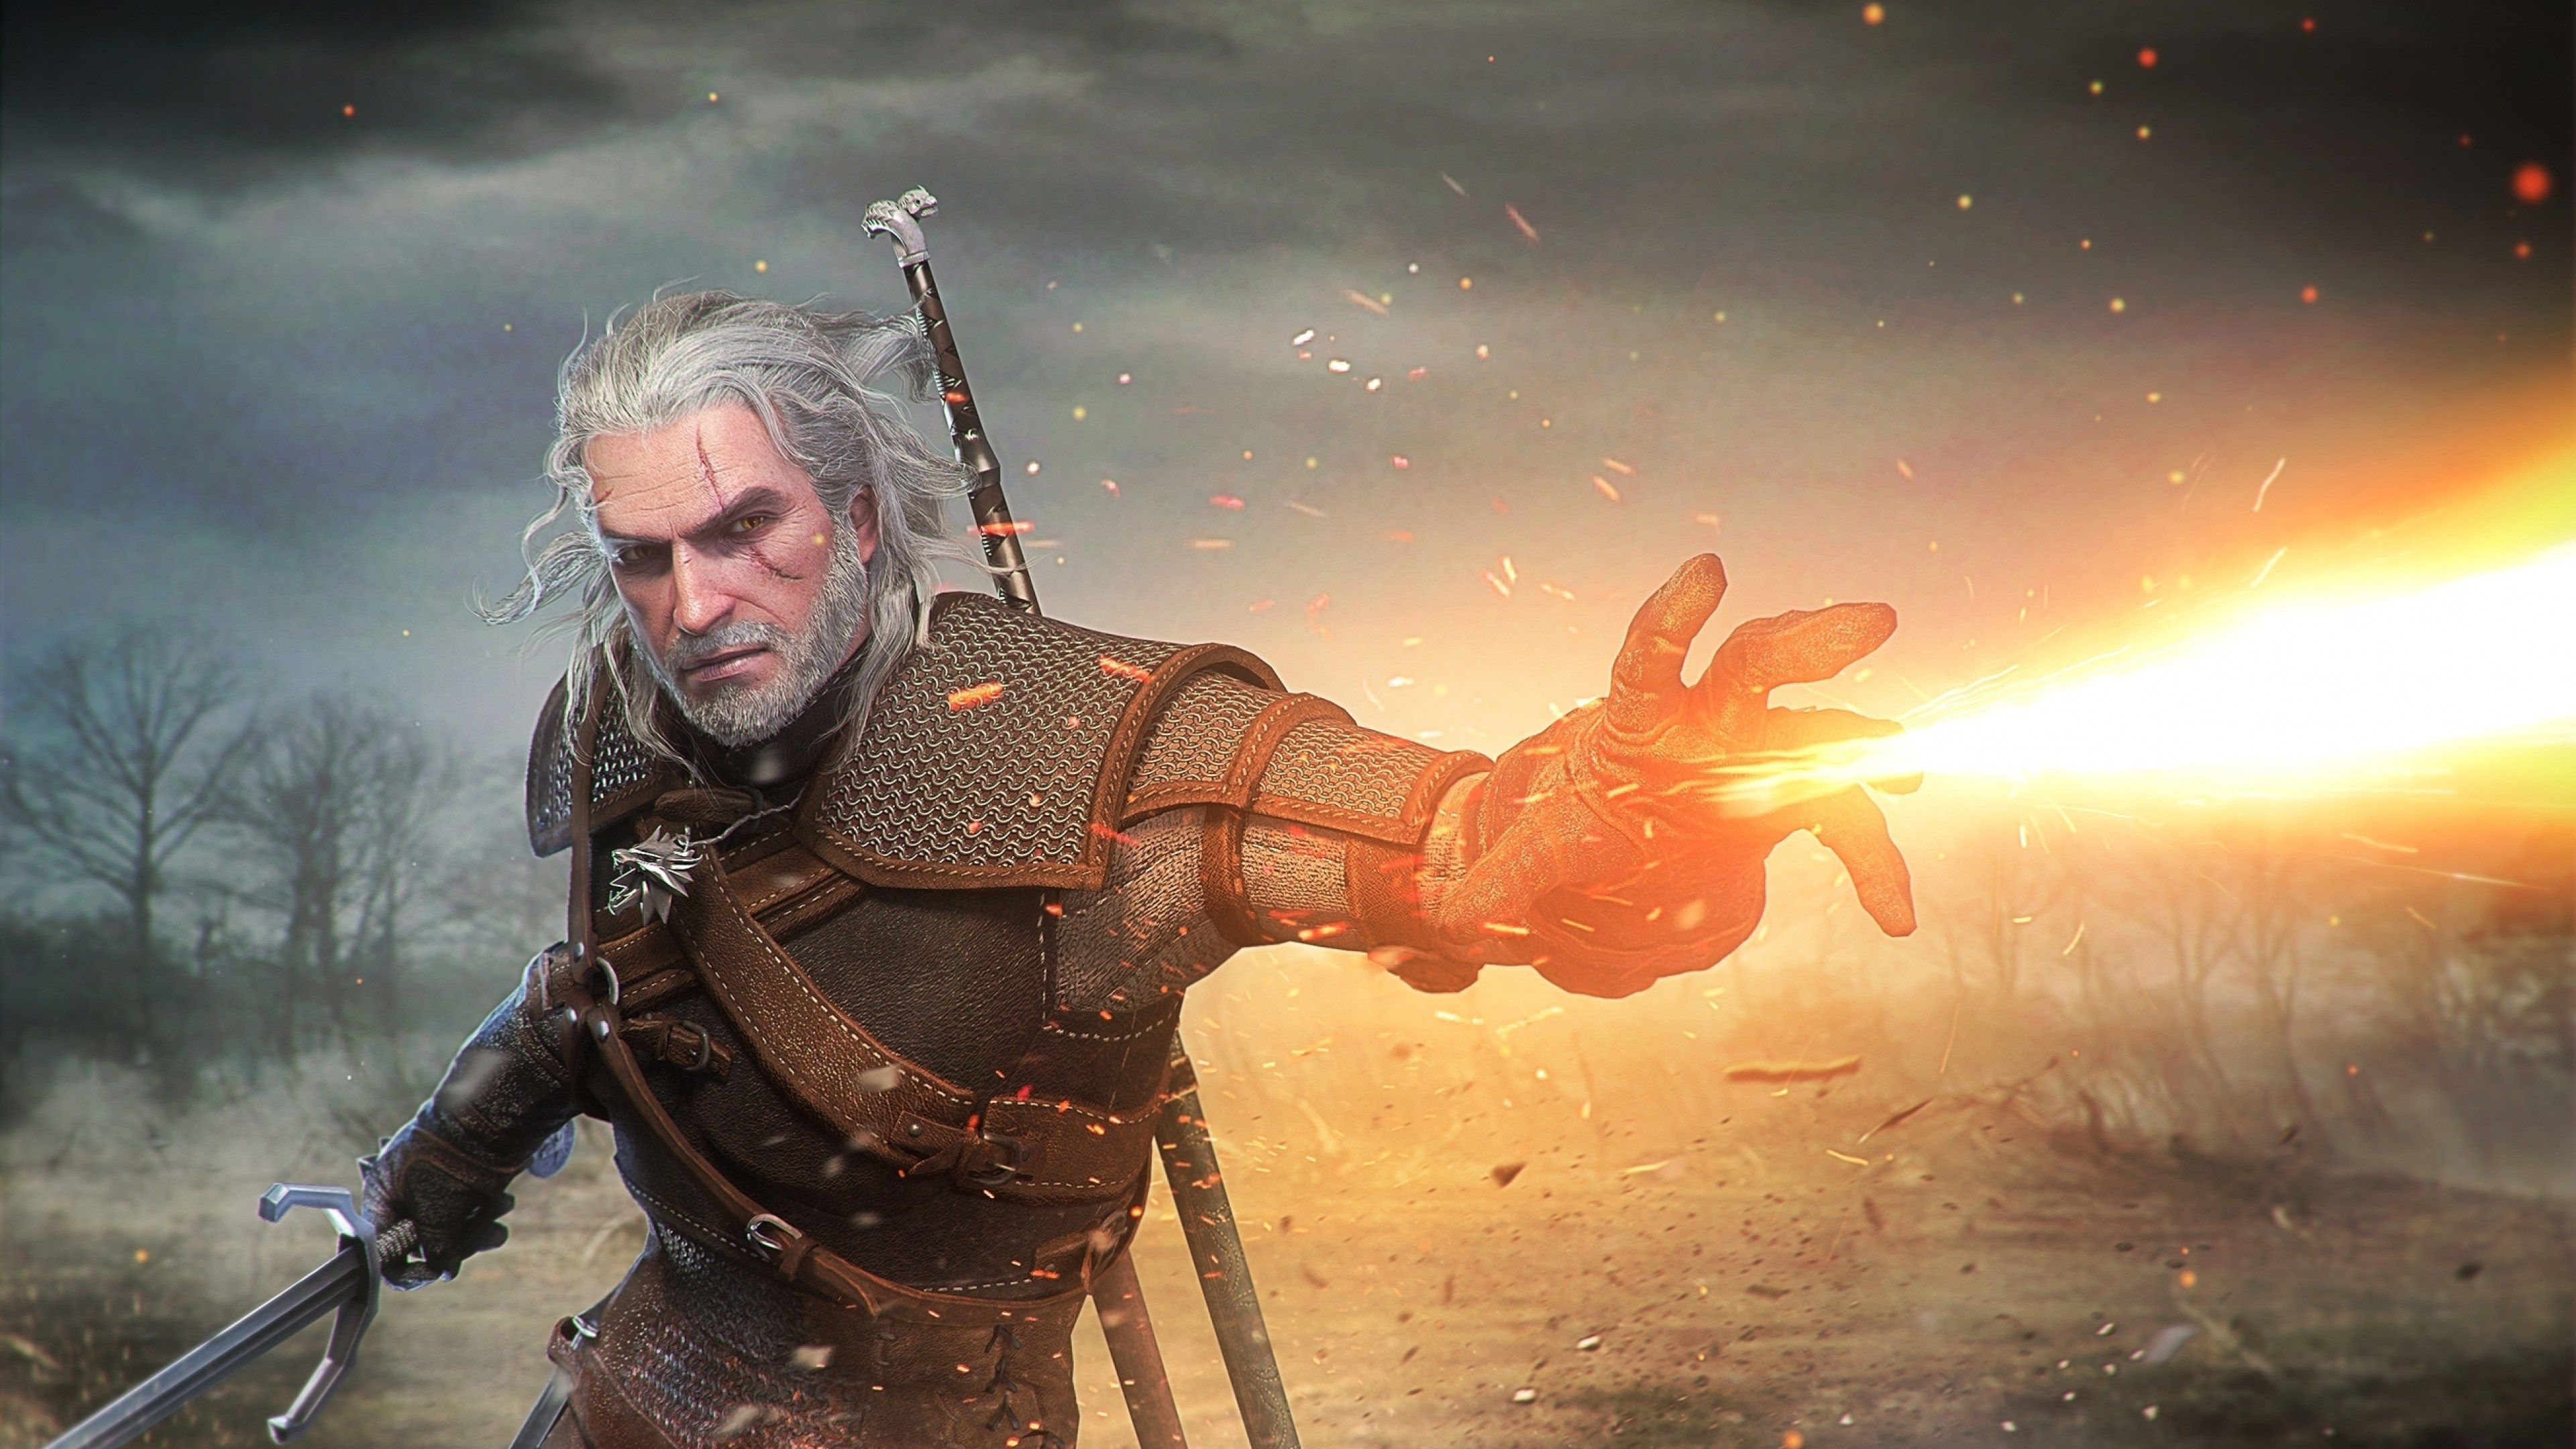 3840x2160 The Witcher 3 4k New Wallpaper Image The Witcher Geralt Of Rivia The Witcher 3